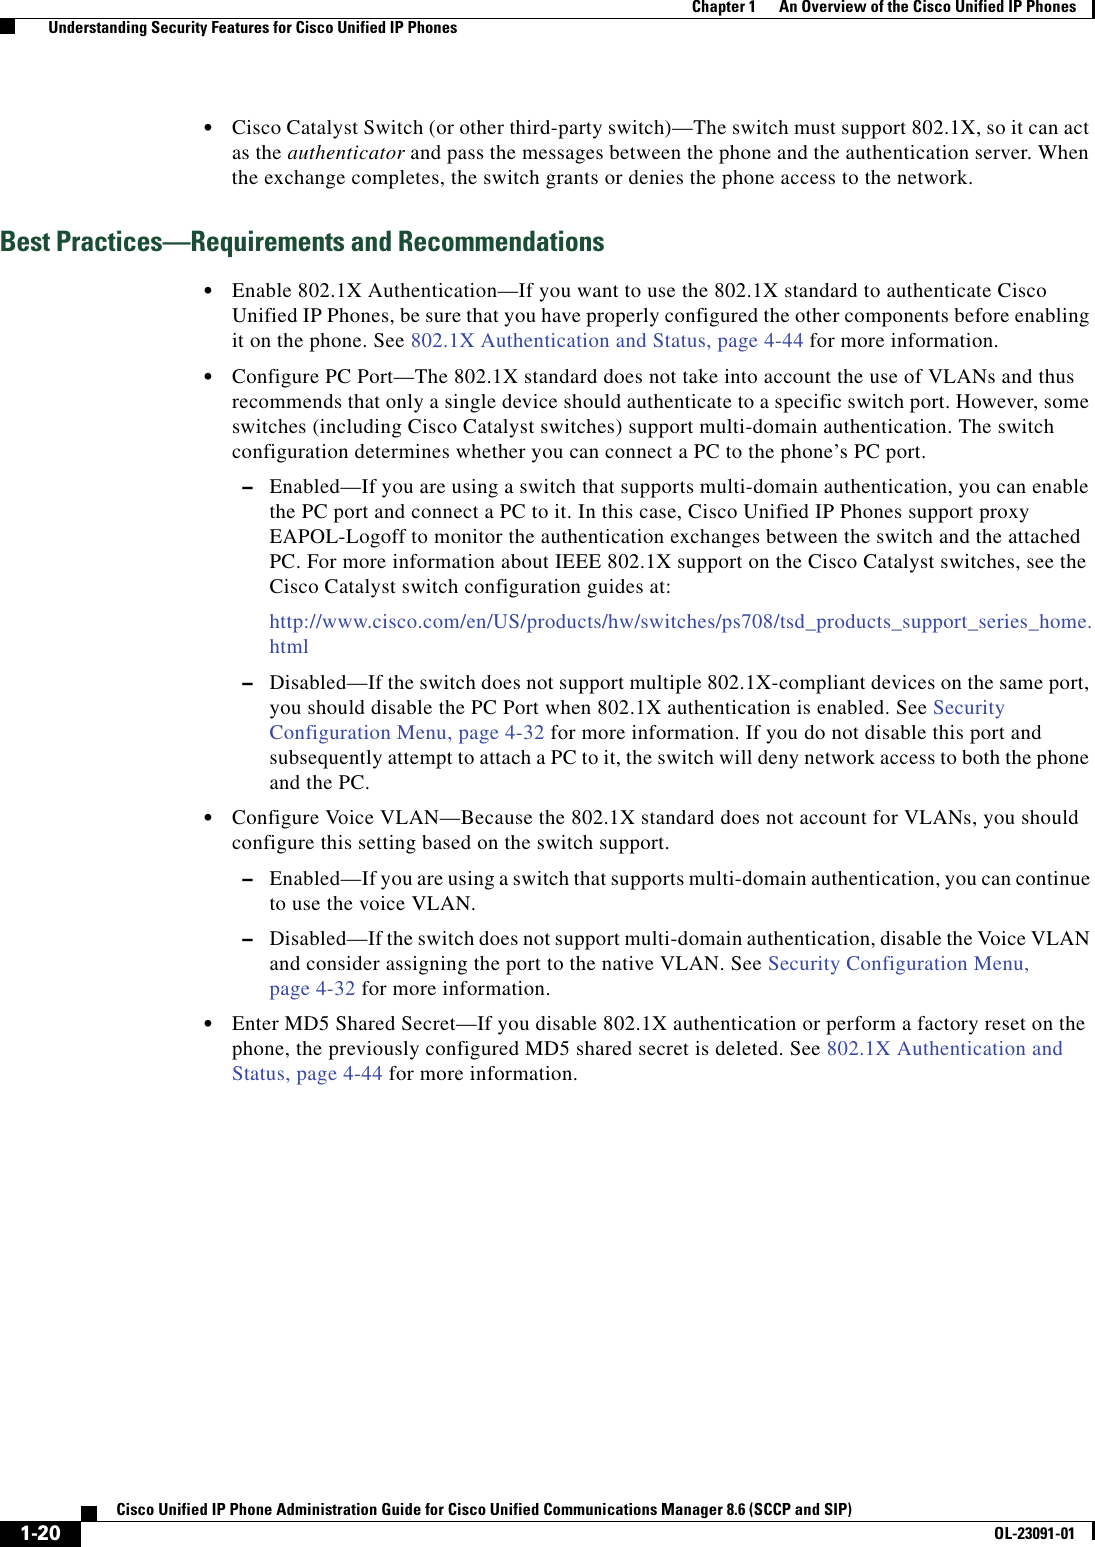 Cisco Systems Administration 8 6 Users Manual Unified IP